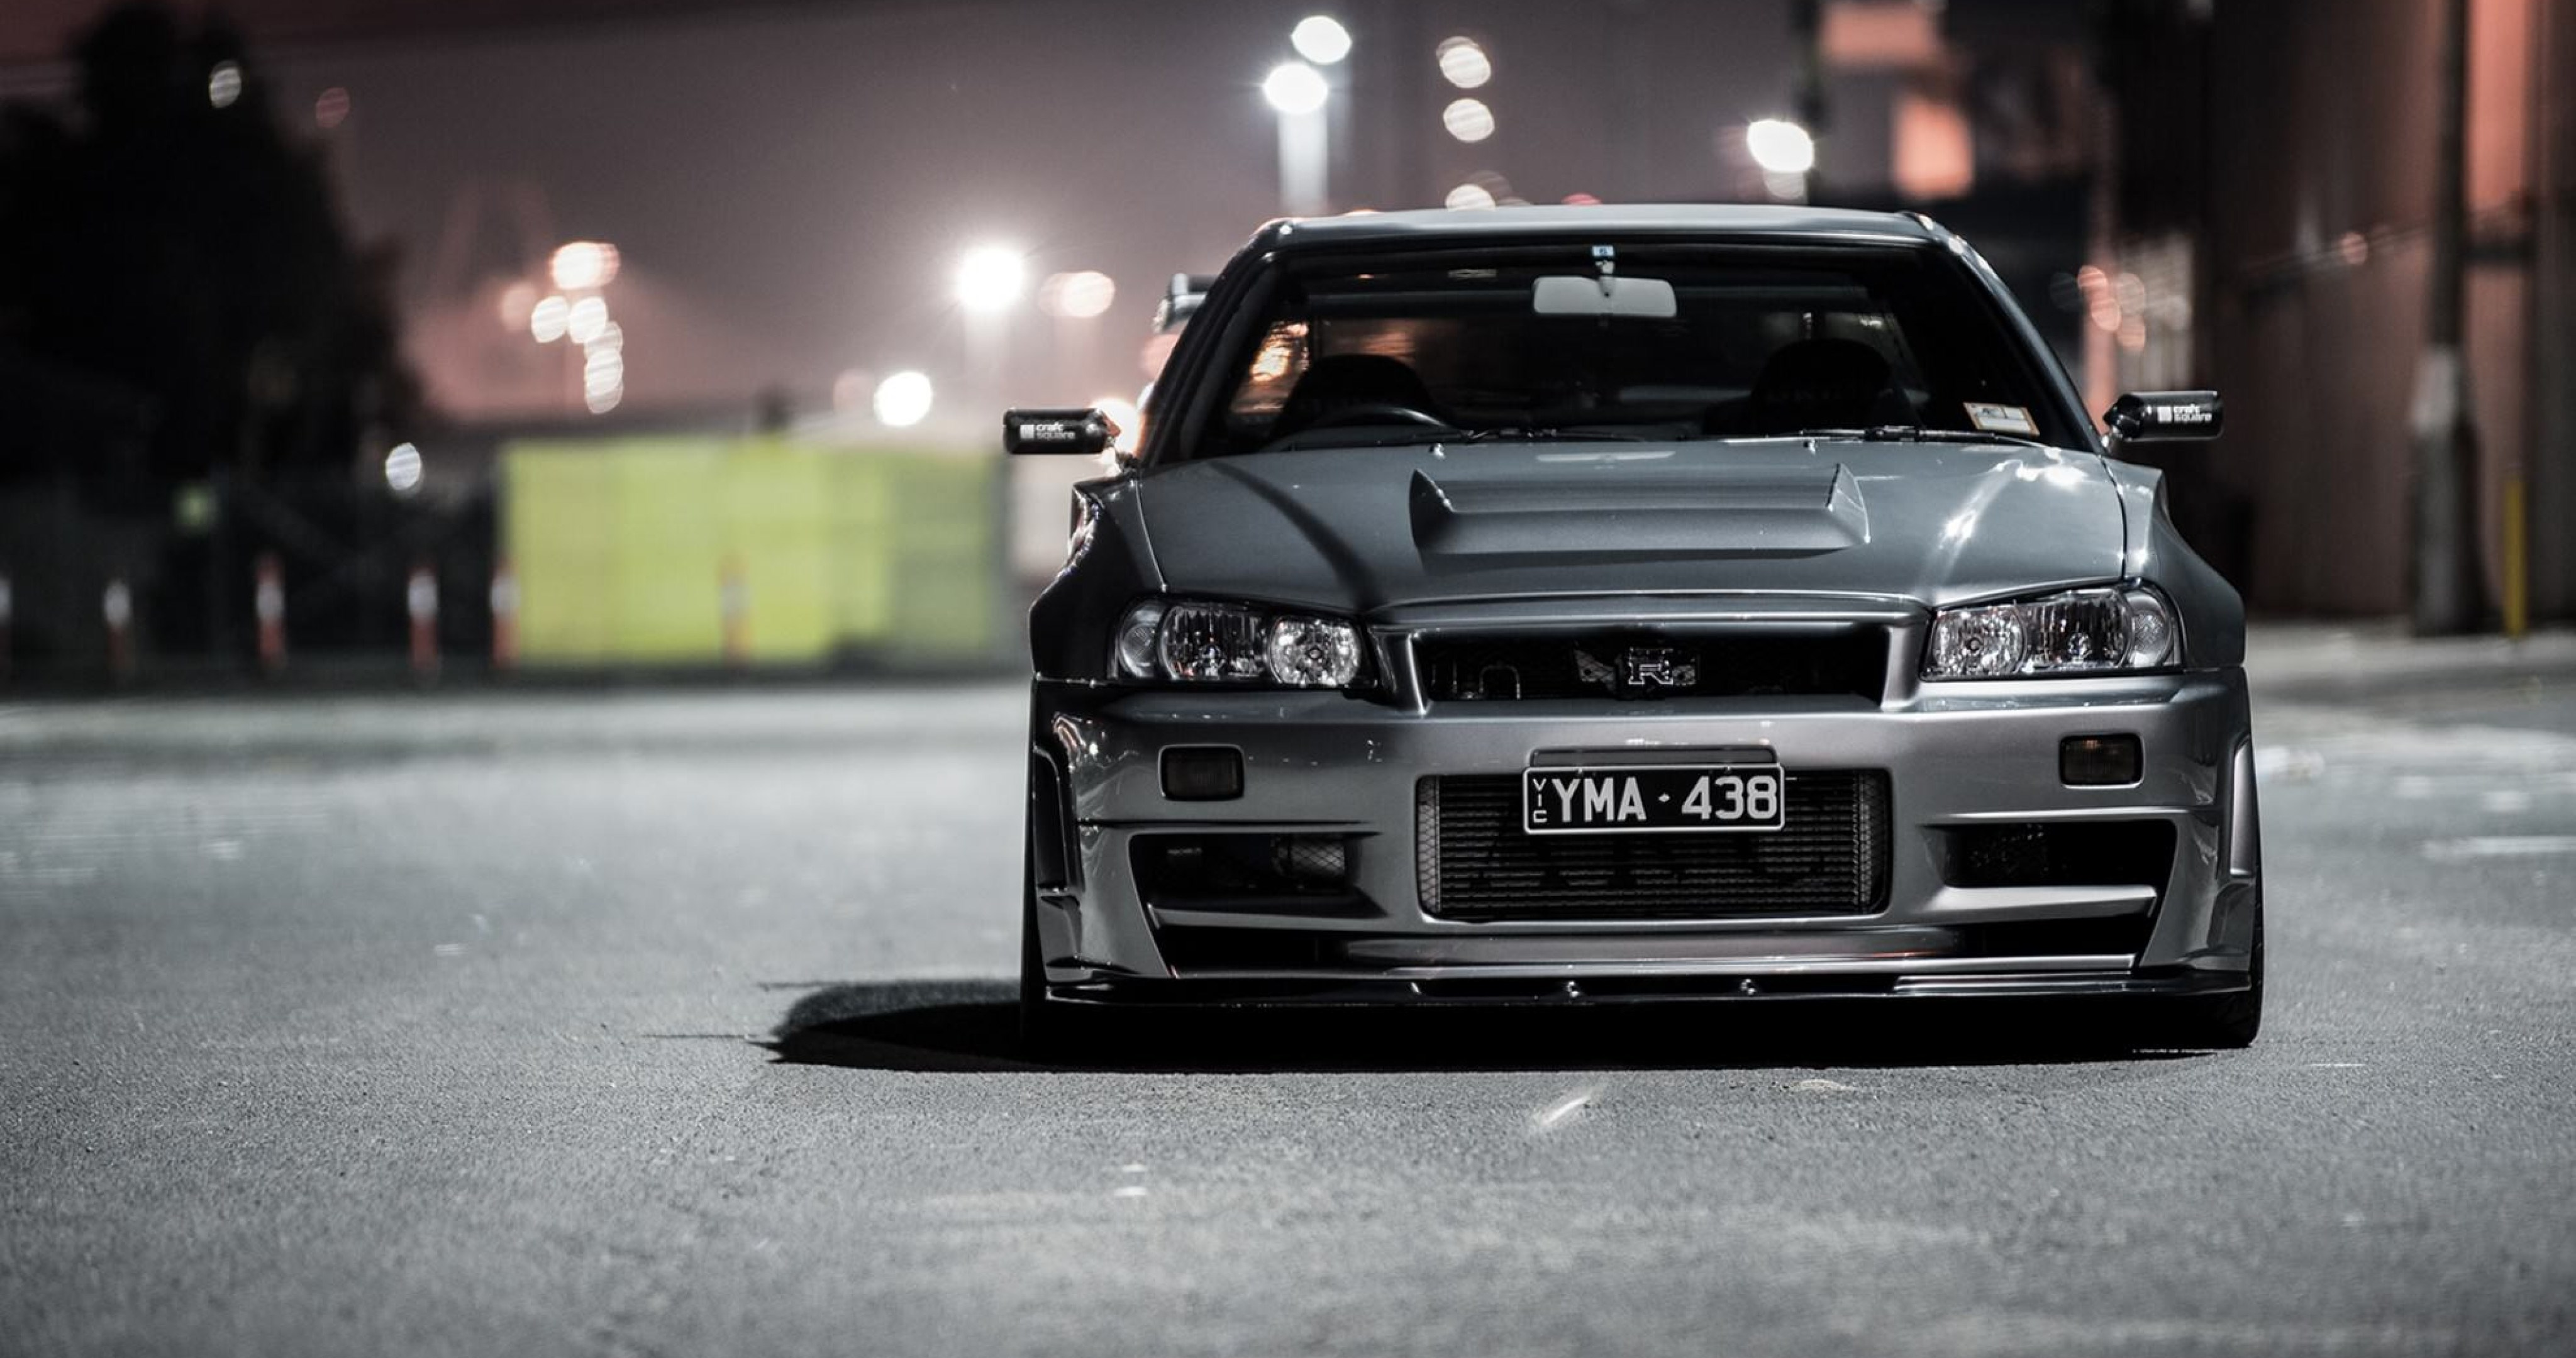 Nissan Skyline Gt R 4k Ultra Hd Wallpaper High Quality Walls